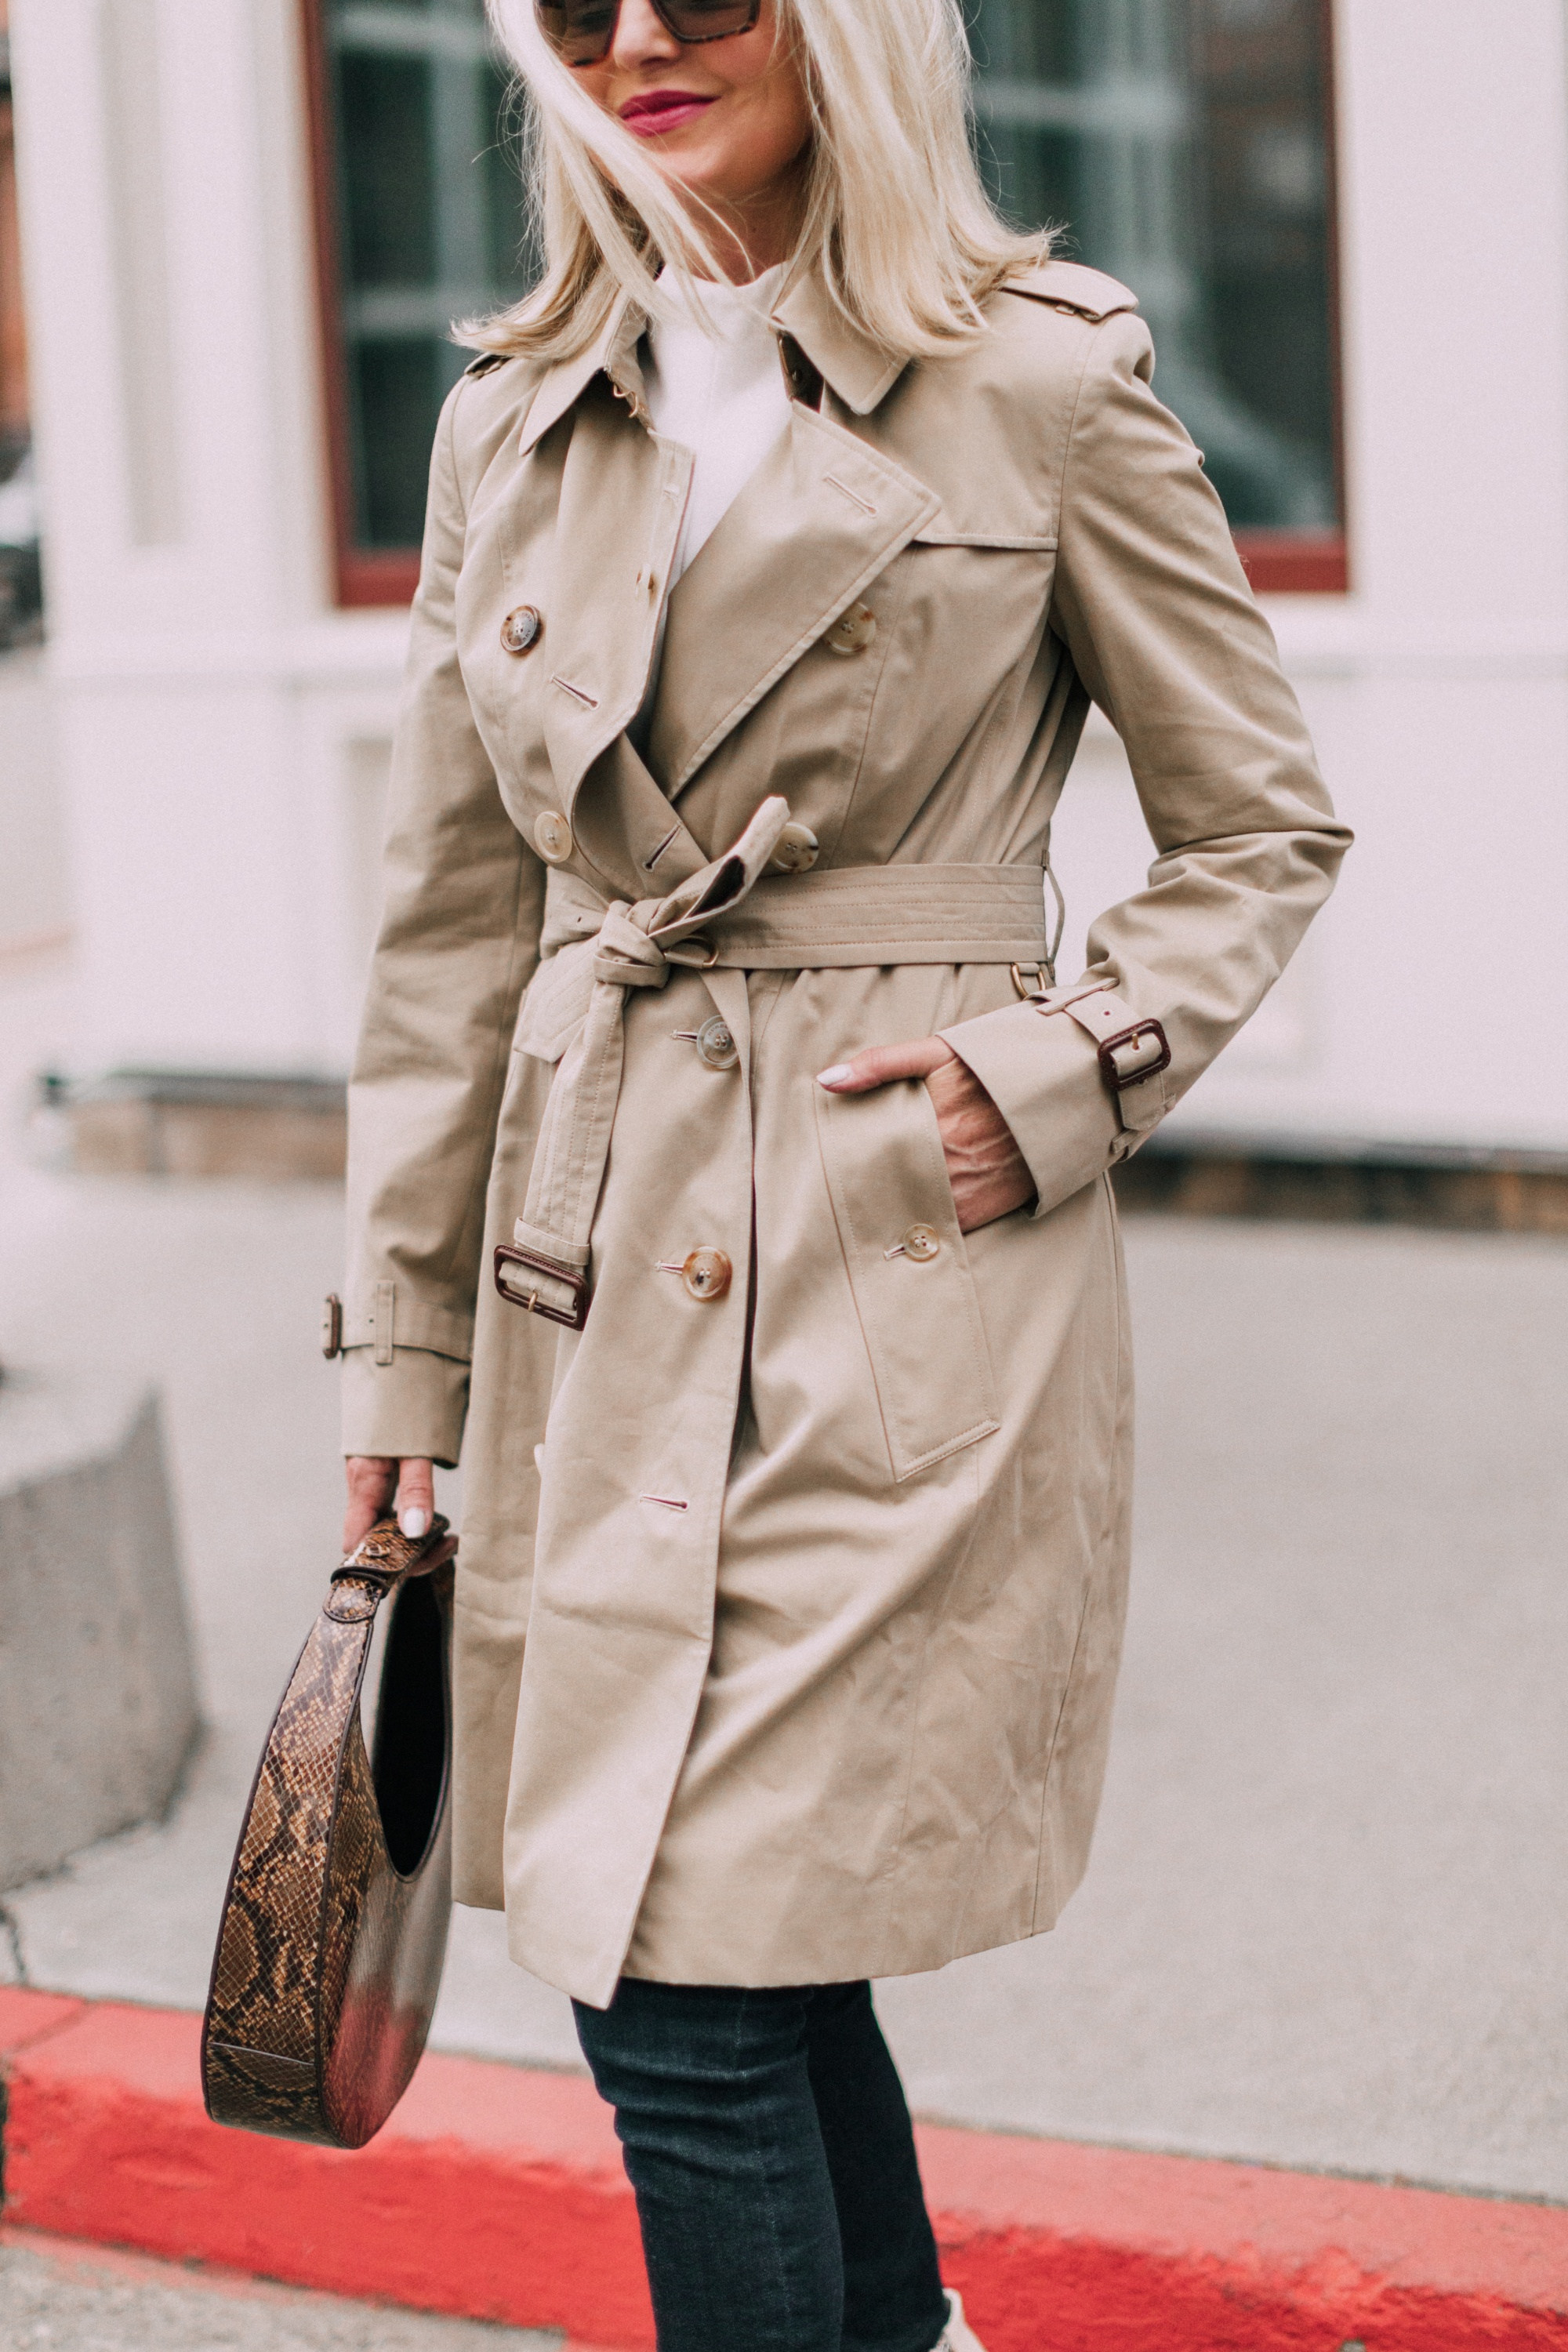 Burberry Chelsea Slim Fit Heritage trench coat with blue jeans staud moon bag outfit